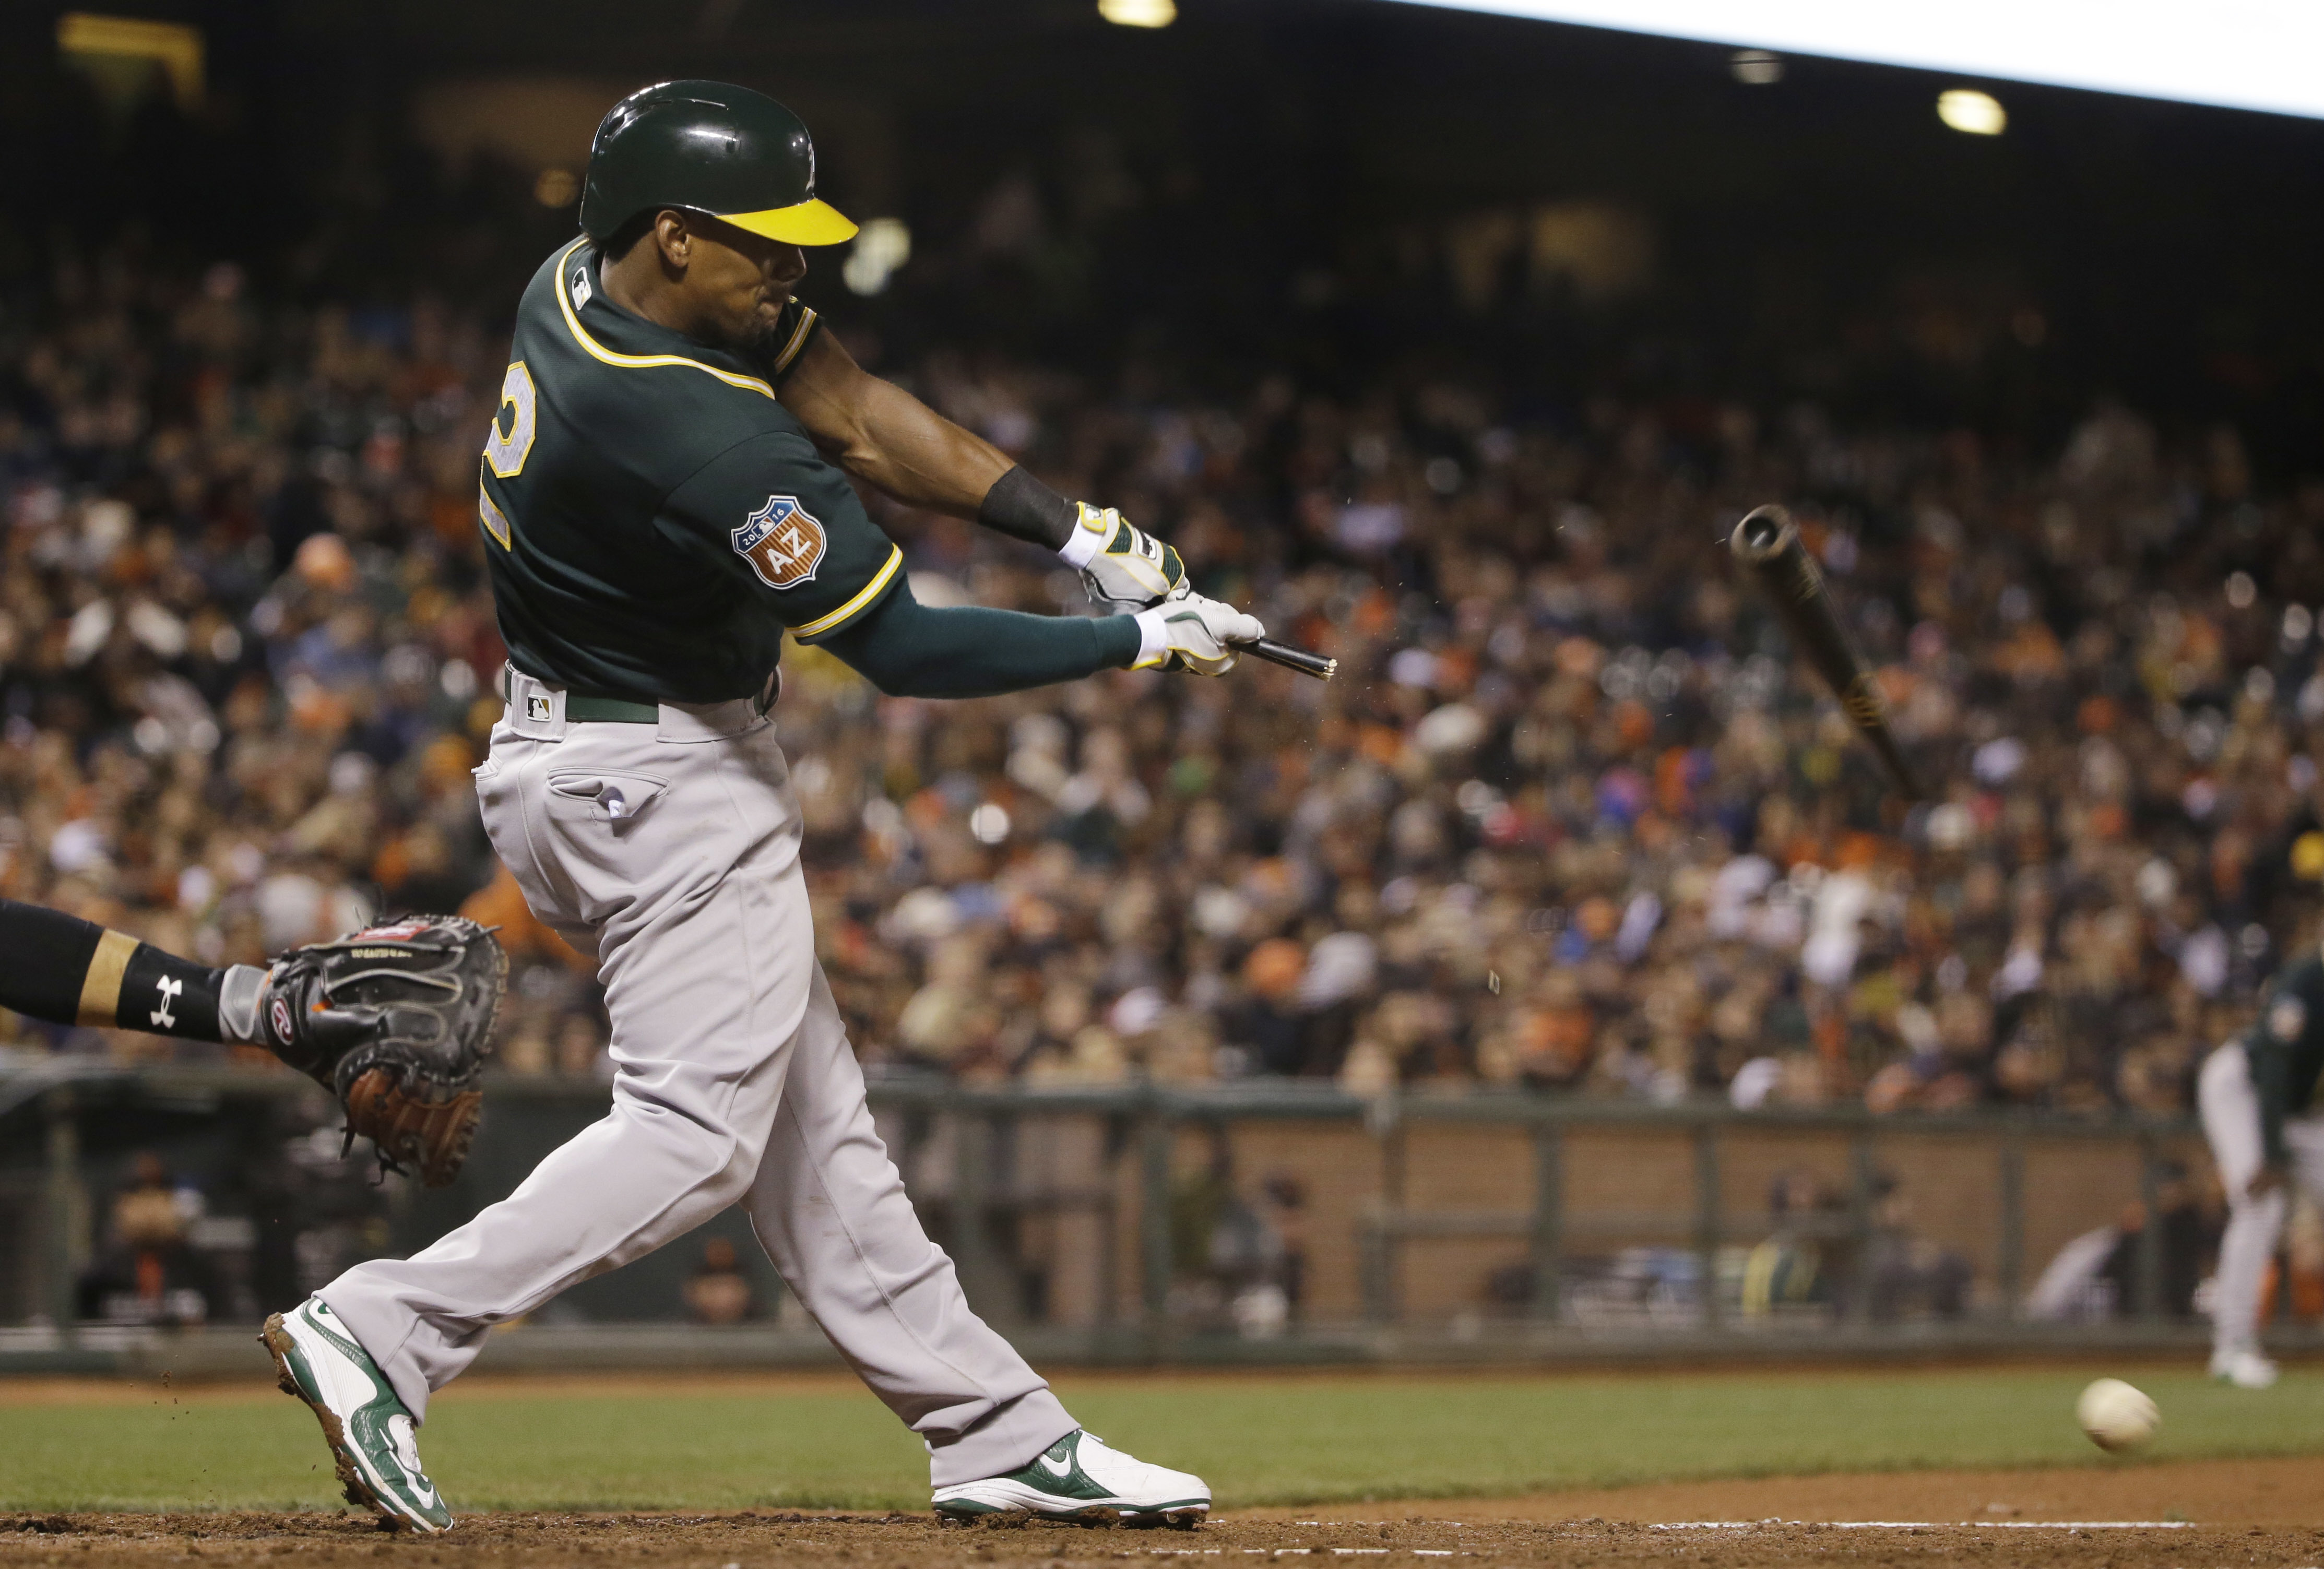 Oakland Athletics' Khris Davis breaks his bat as he grounds out against the San Francisco Giants during the seventh inning of an exhibition baseball game Thursday, March 31, 2016, in San Francisco.(AP Photo/Marcio Jose Sanchez)